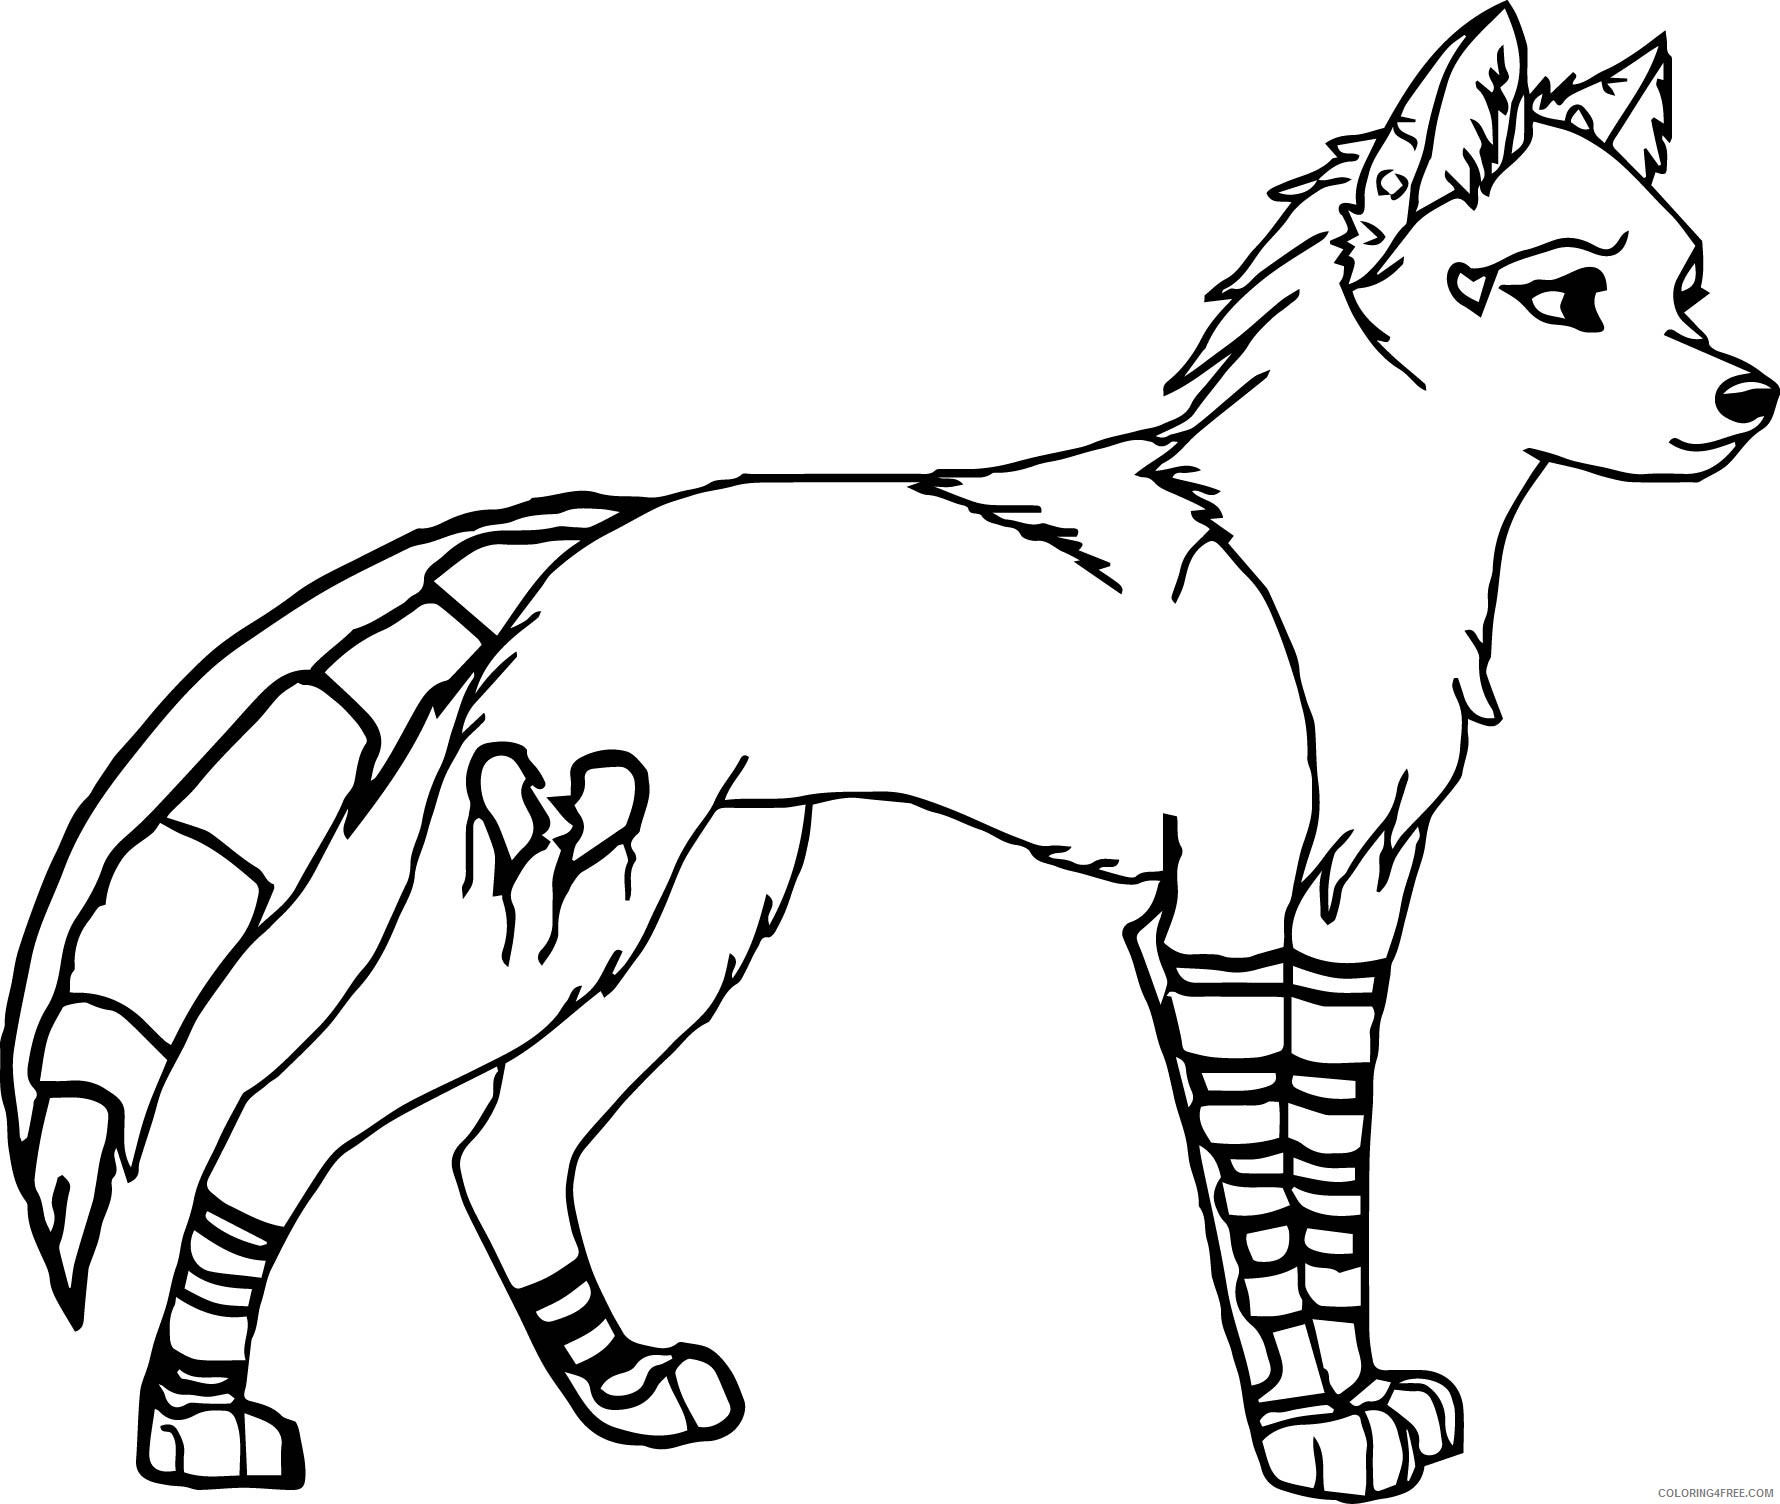 wolf coloring pages female Coloring4free